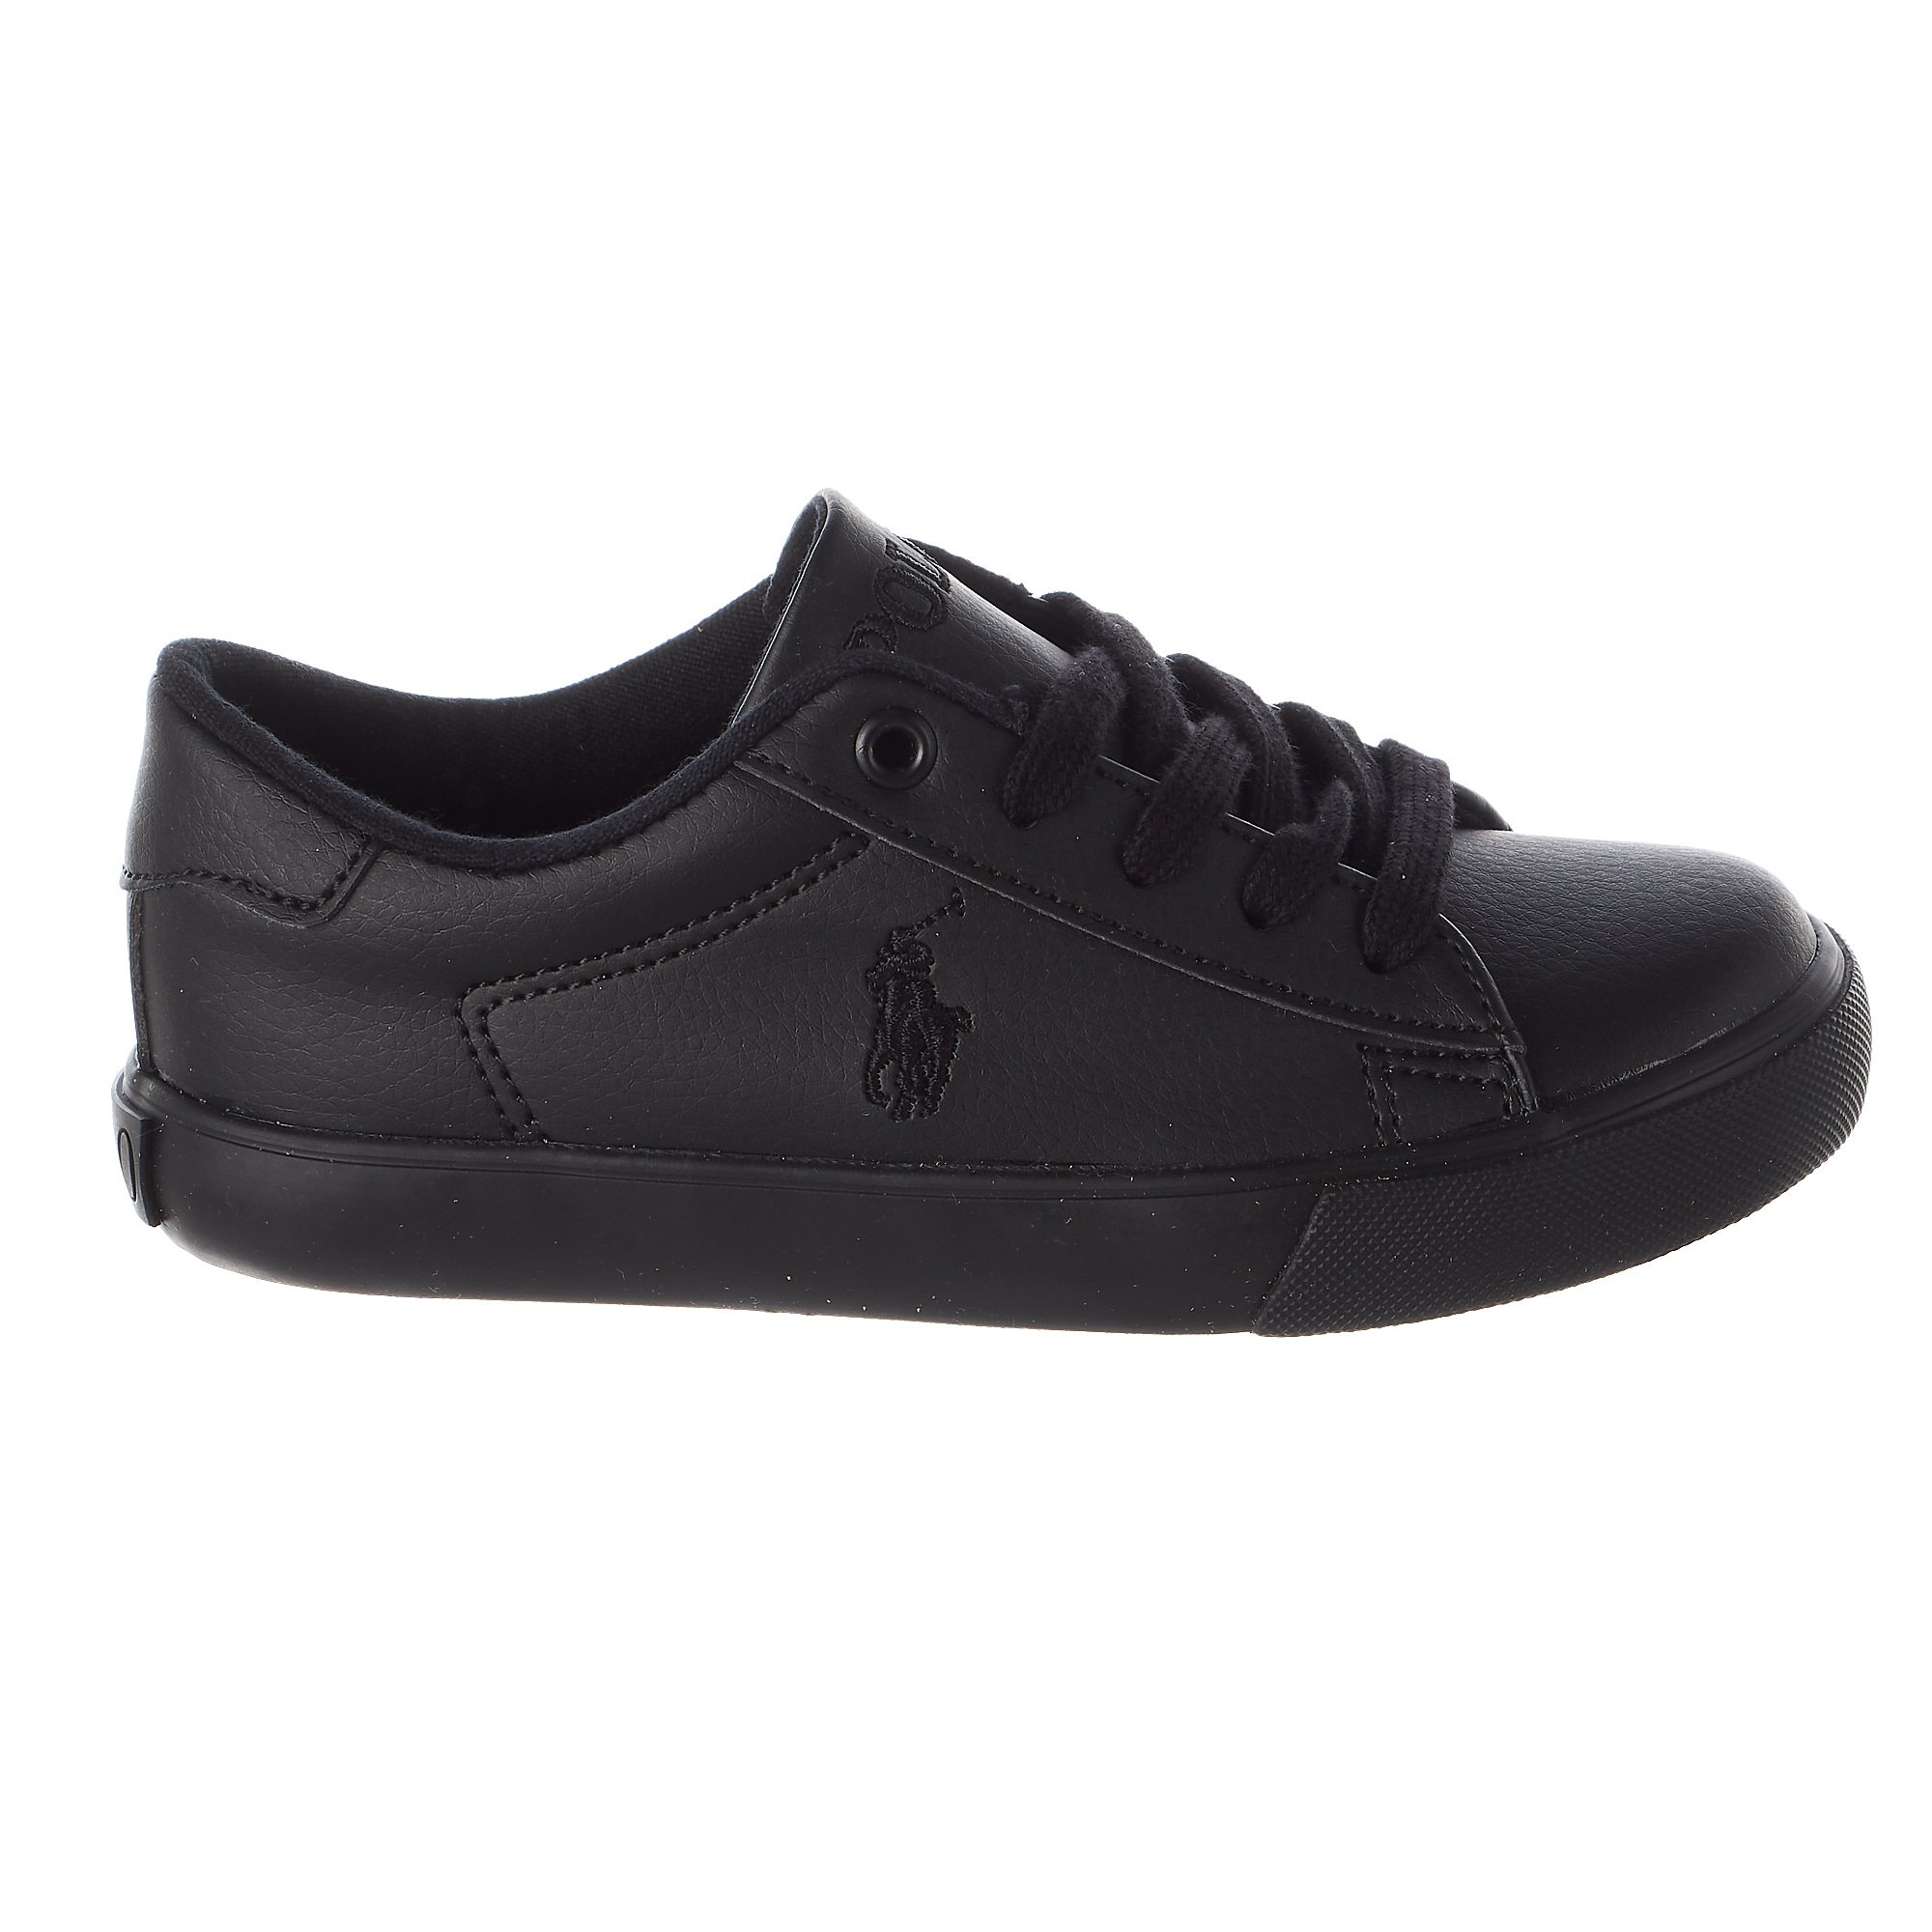 2457260a Buy Polo Ralph Lauren Easton Sneaker - Triple Black Tumbled - Boys ...